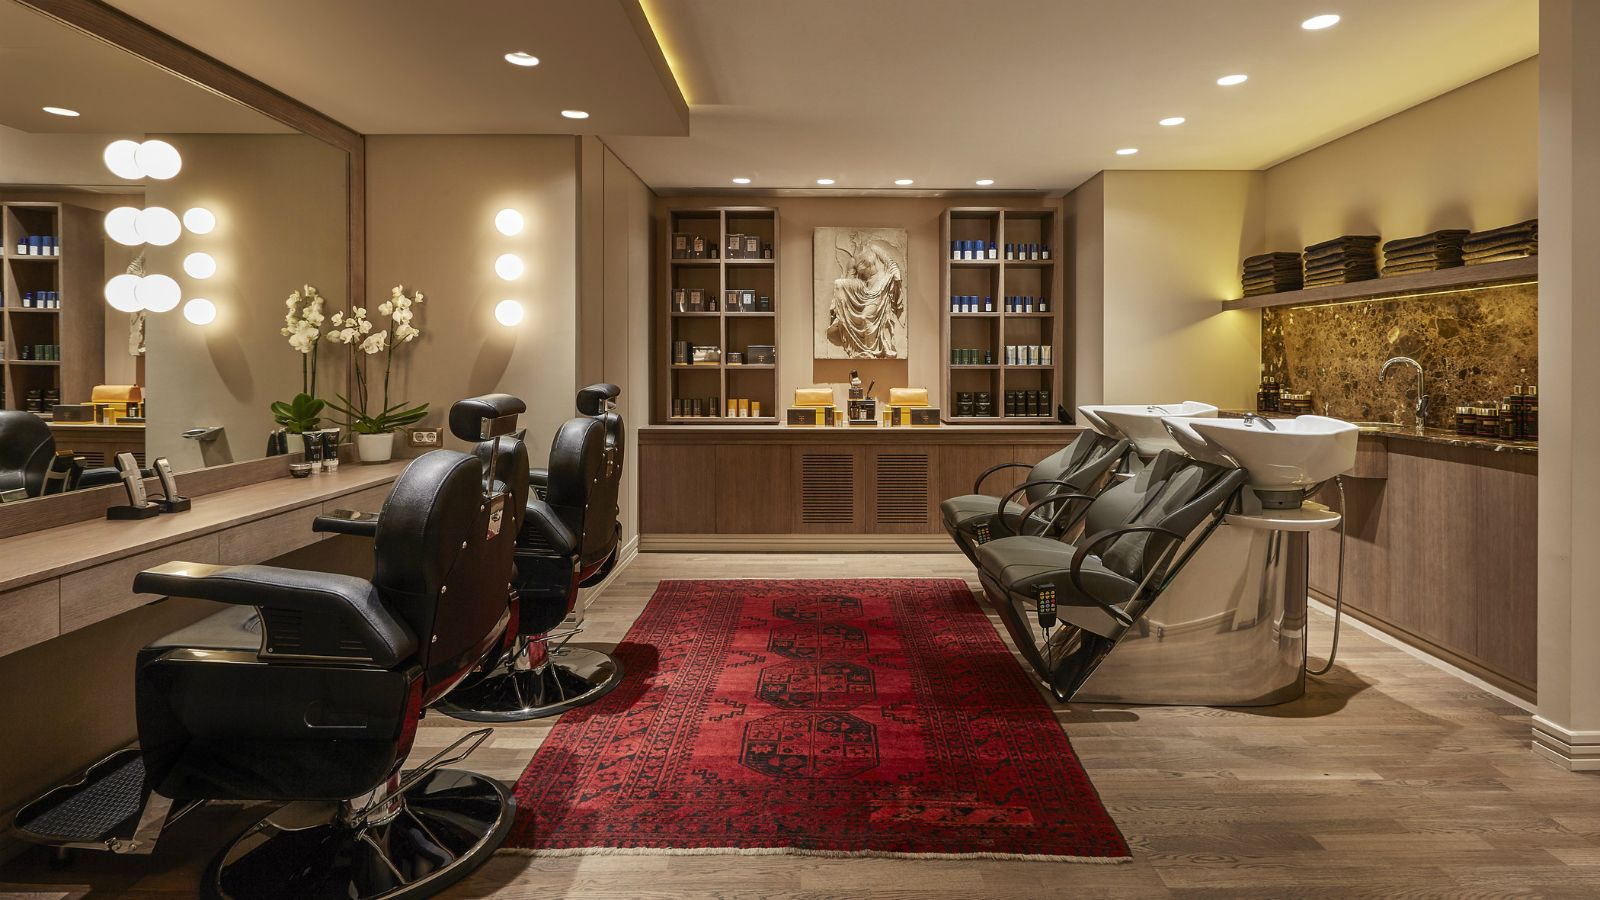 Hair spa salon located within the GB Spa - Hotel Grande Bretagne, Athens